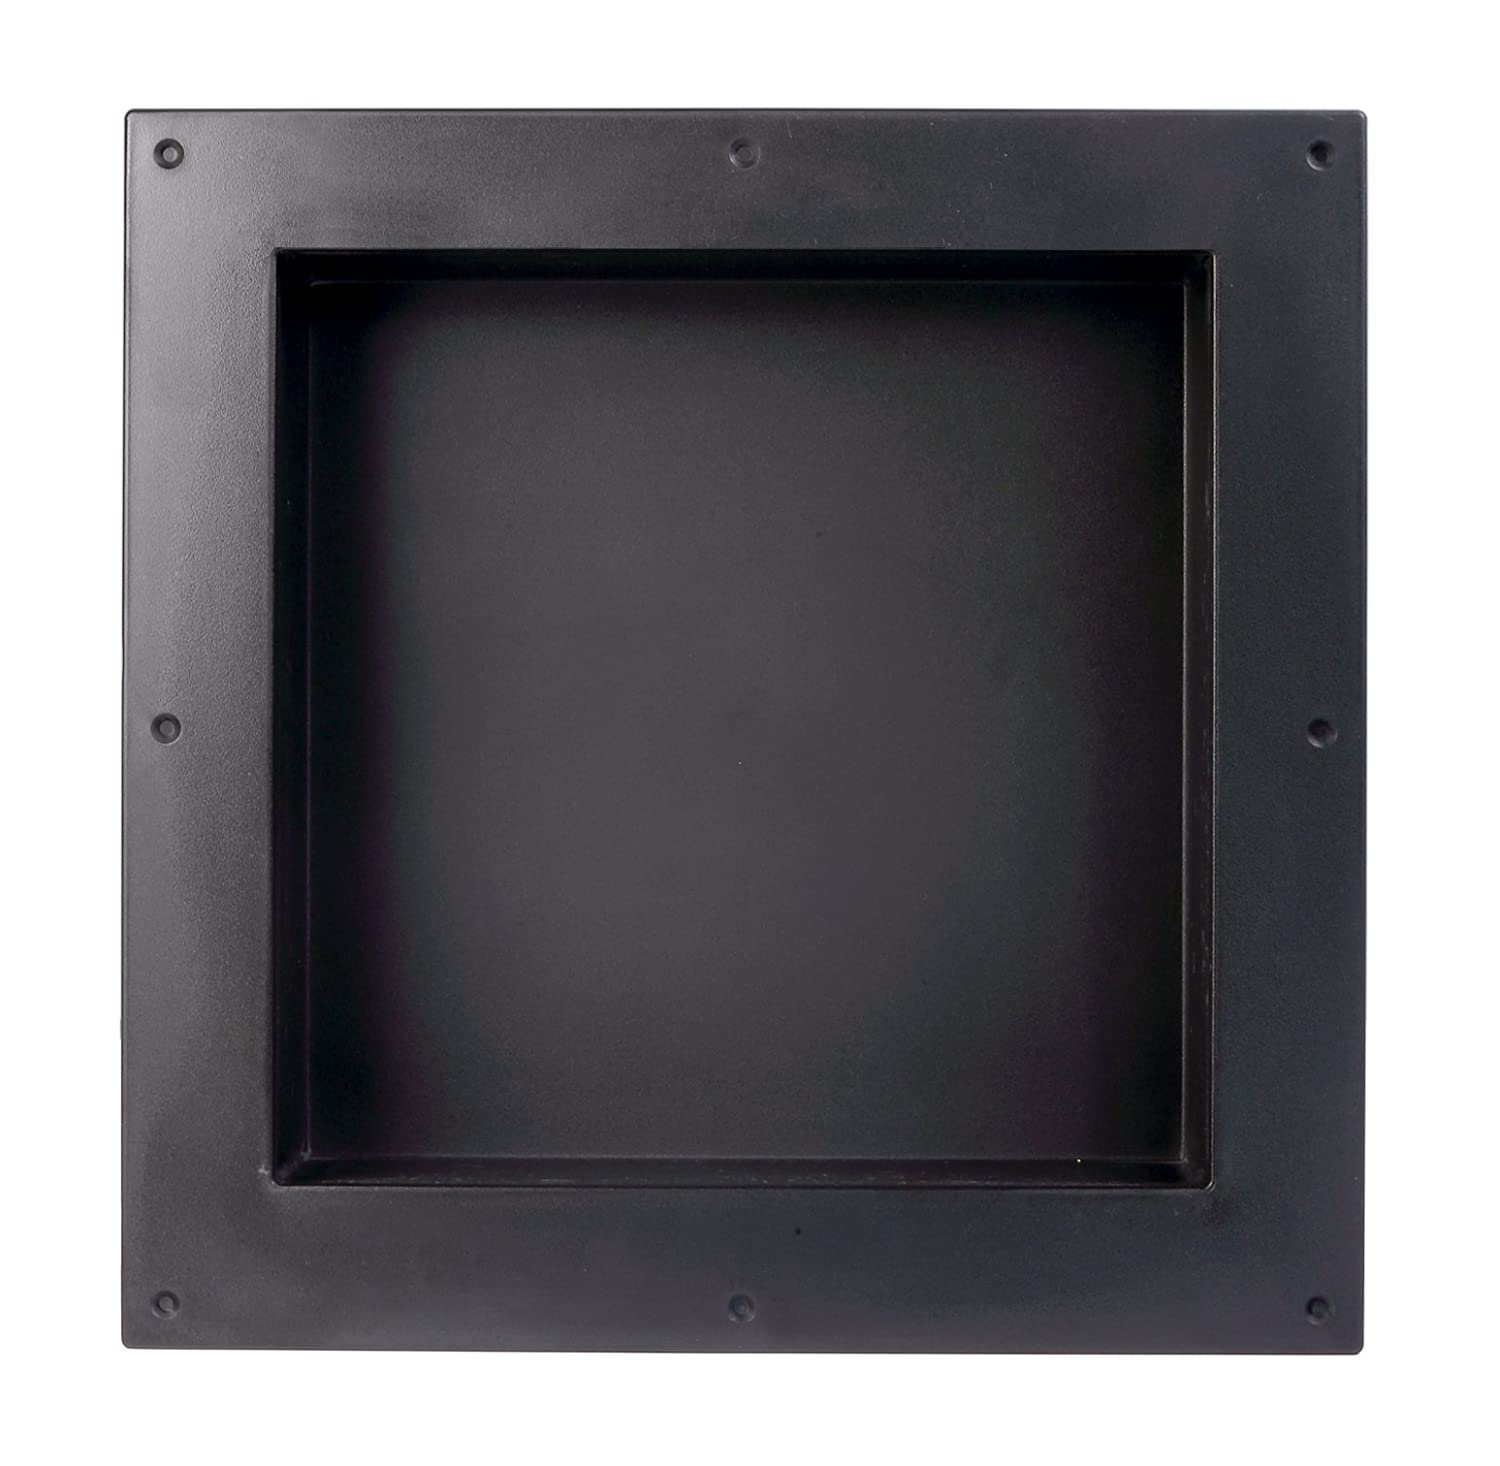 """Large Double Recessed Shower Niche, Ready to Tile, 25"""" x 17"""" x 3.75"""" by Novalinea"""